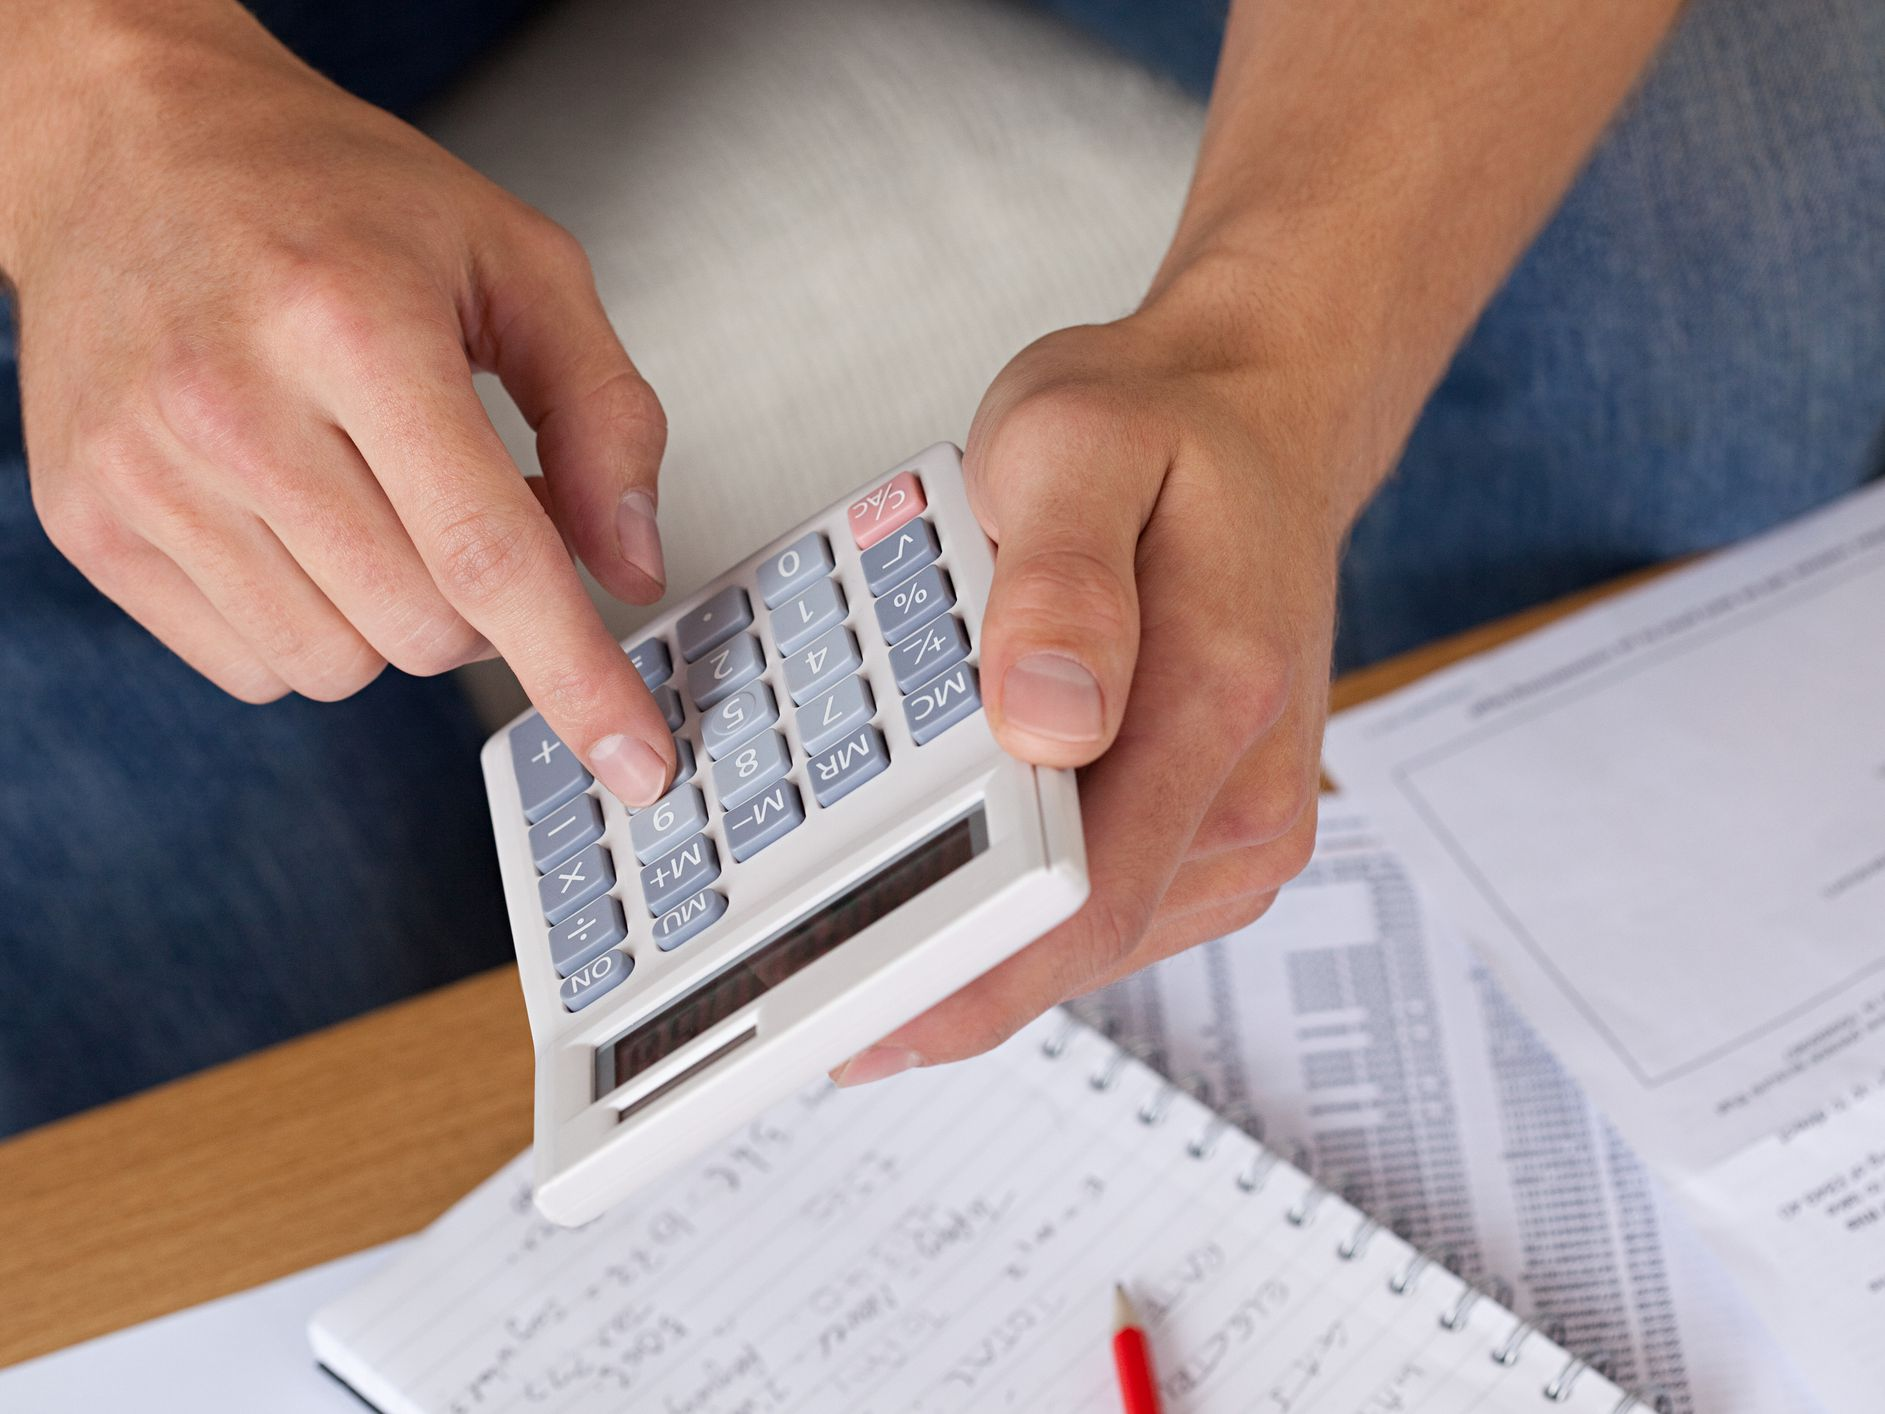 How to Calculate the Present Value of an Annuity Due